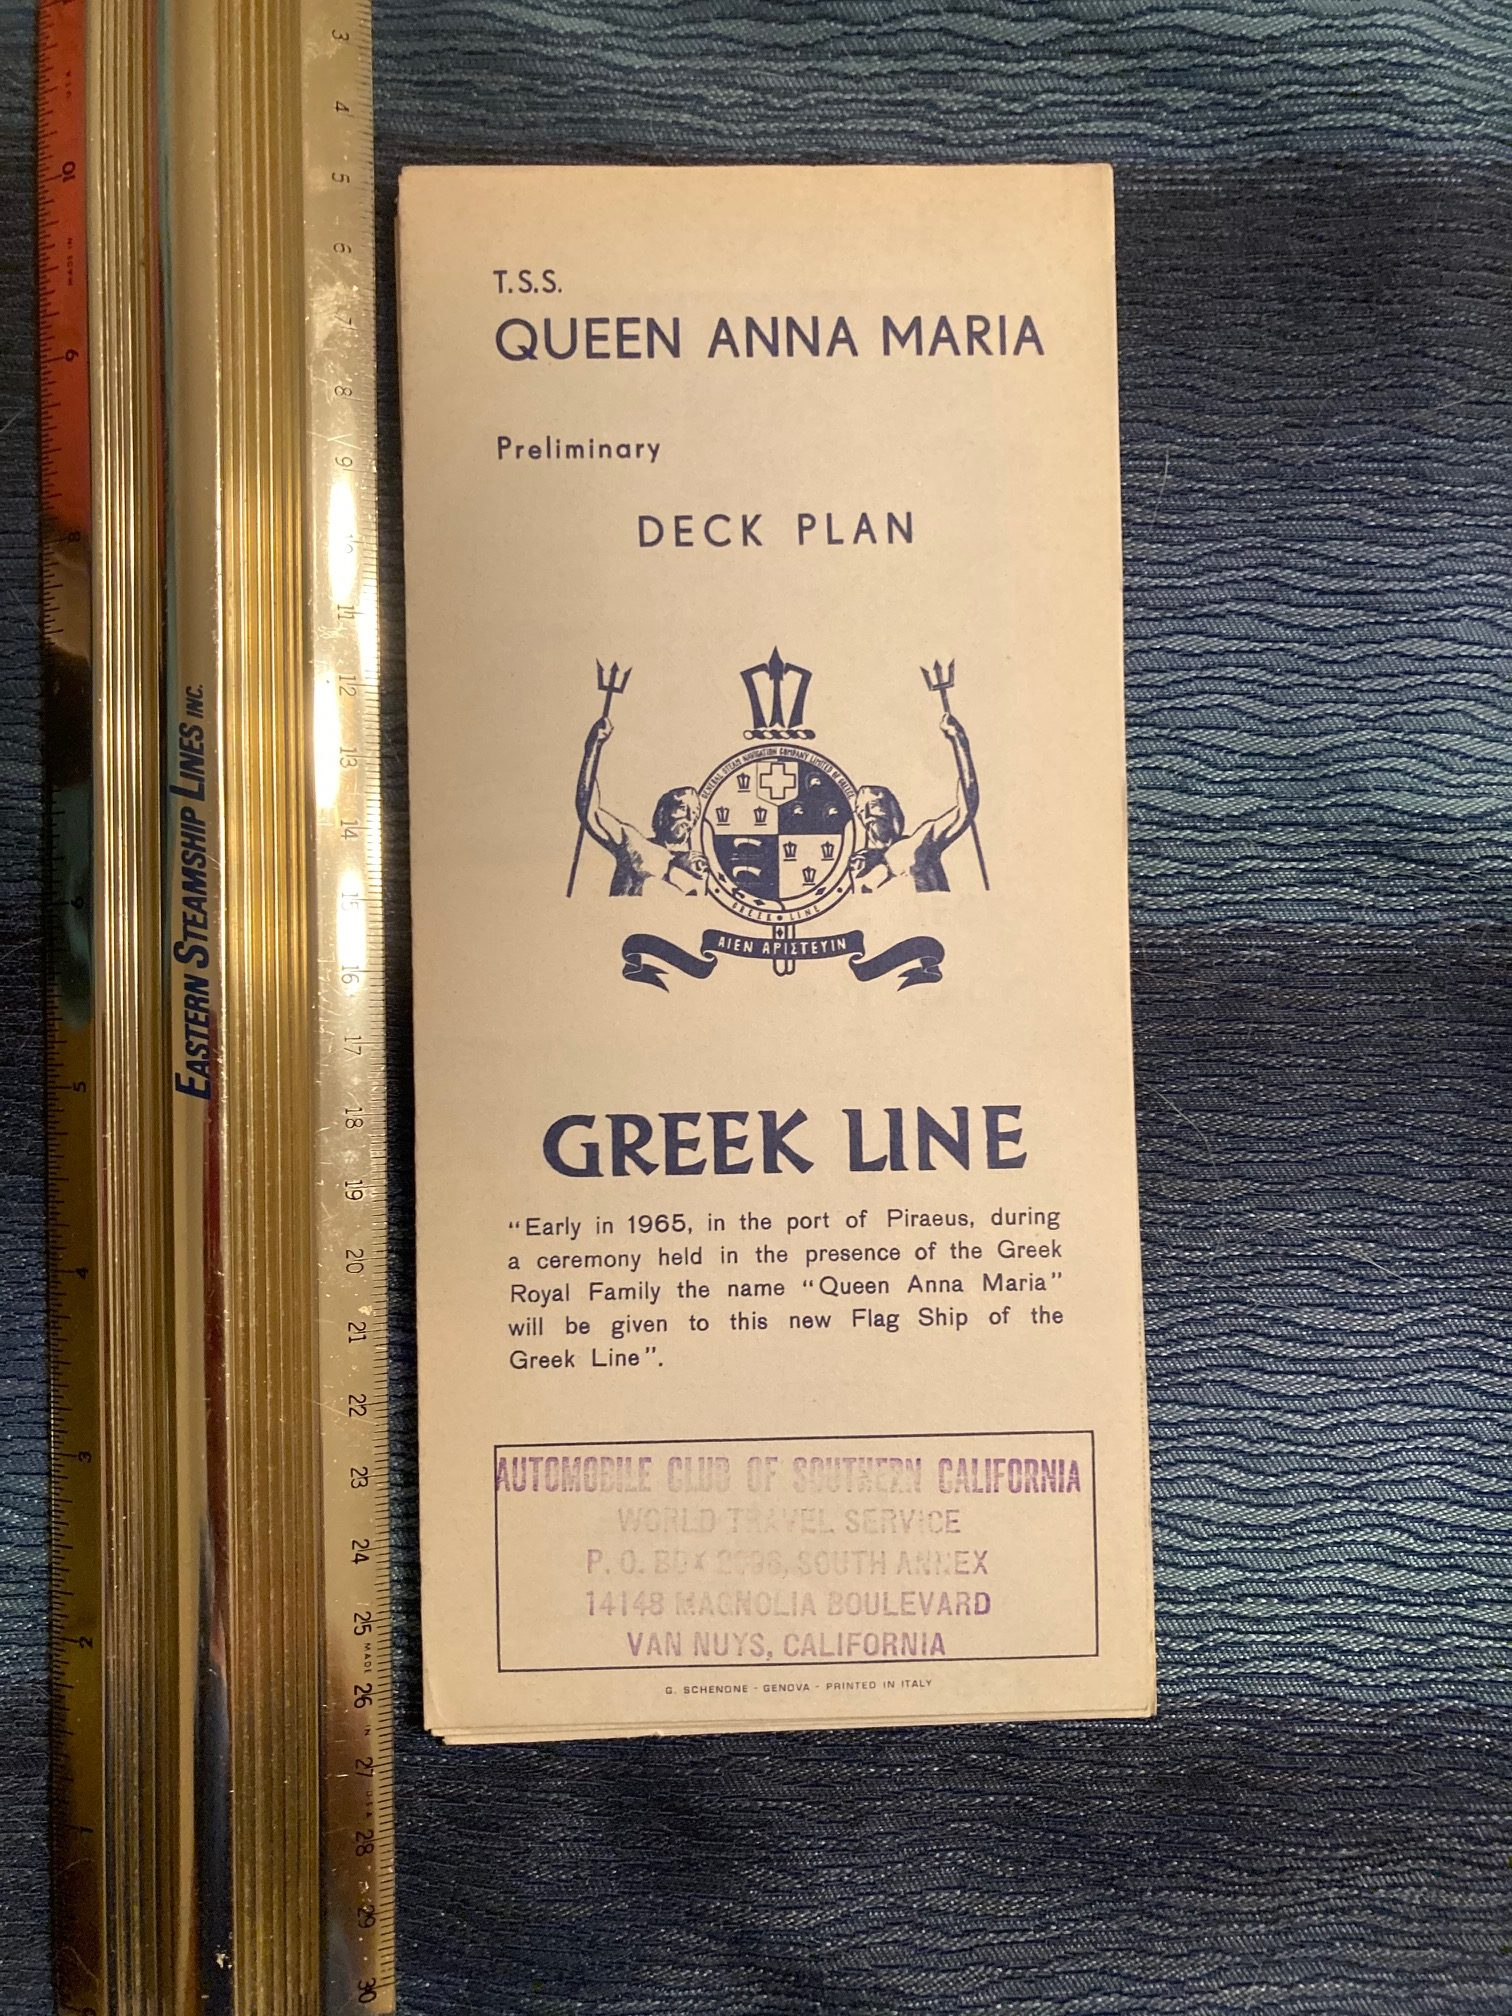 Greek Line: Queen Anna Maria Deck Plan